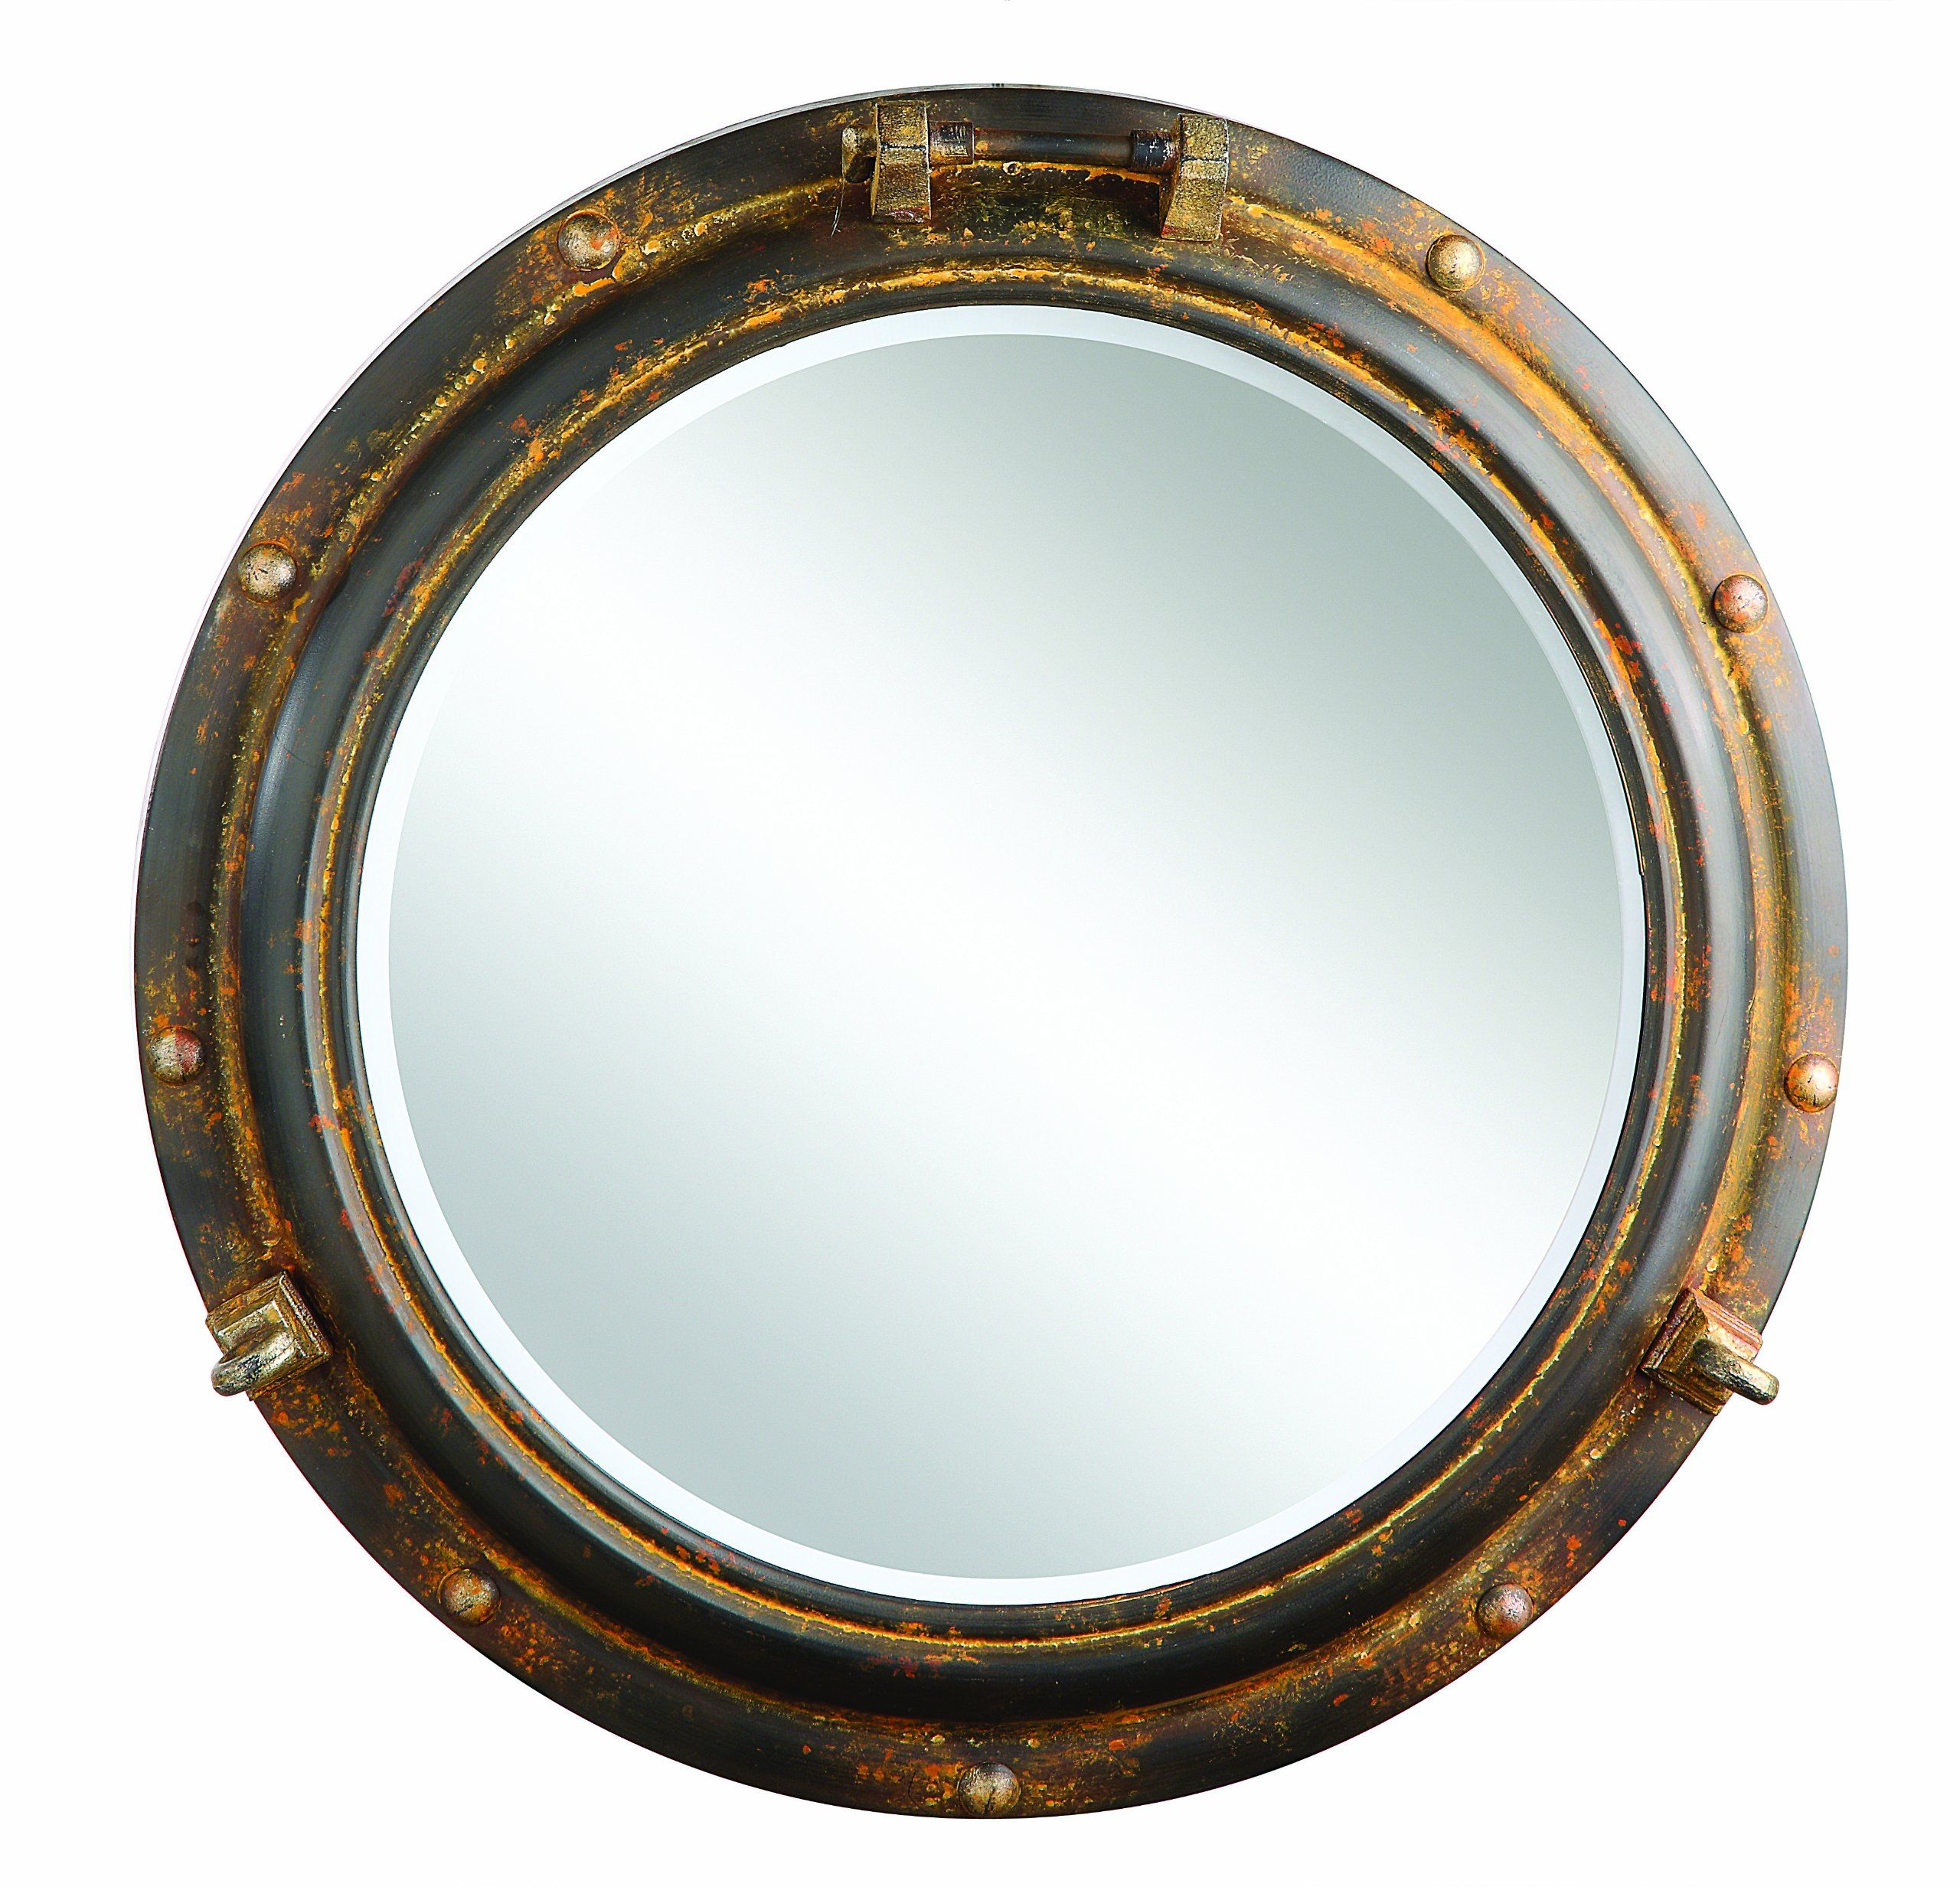 Creative Co Op Porthole Mirror, Rust Metal (Image 13 of 30)